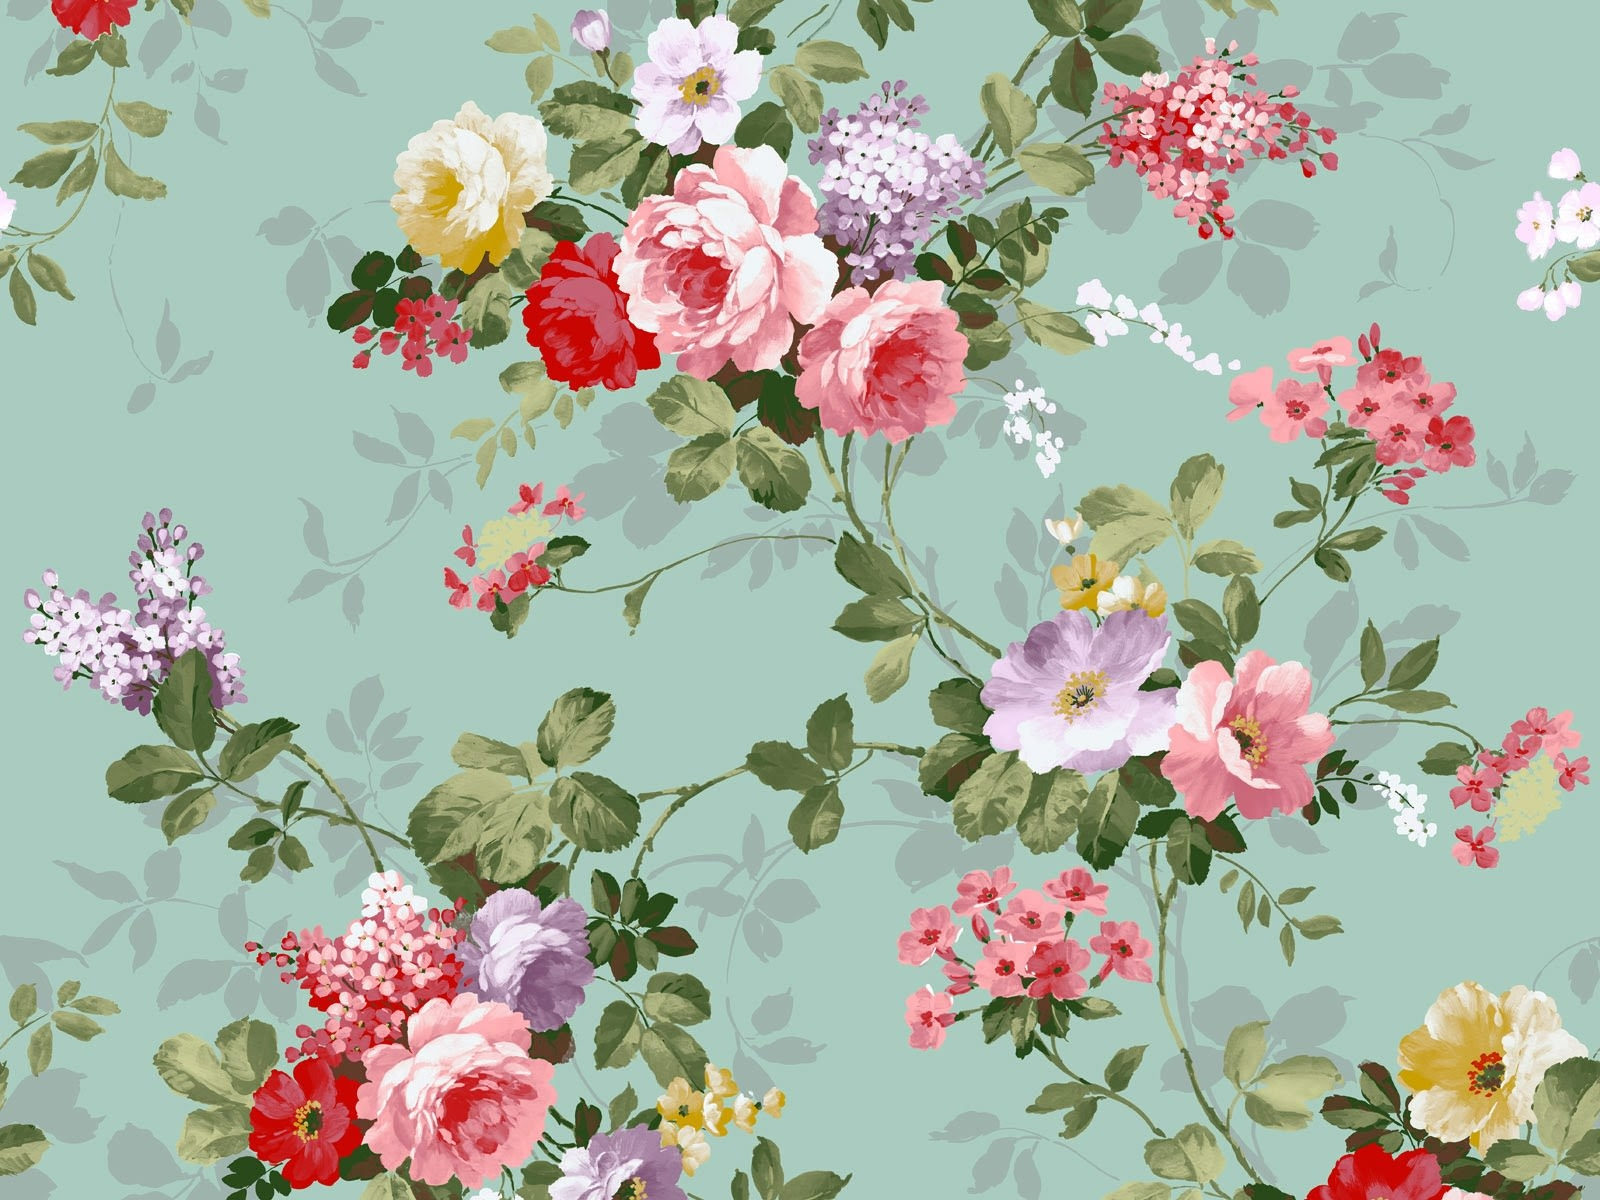 Classic Vintage Wallpaper: Download 15+ Free Floral Vintage Wallpapers